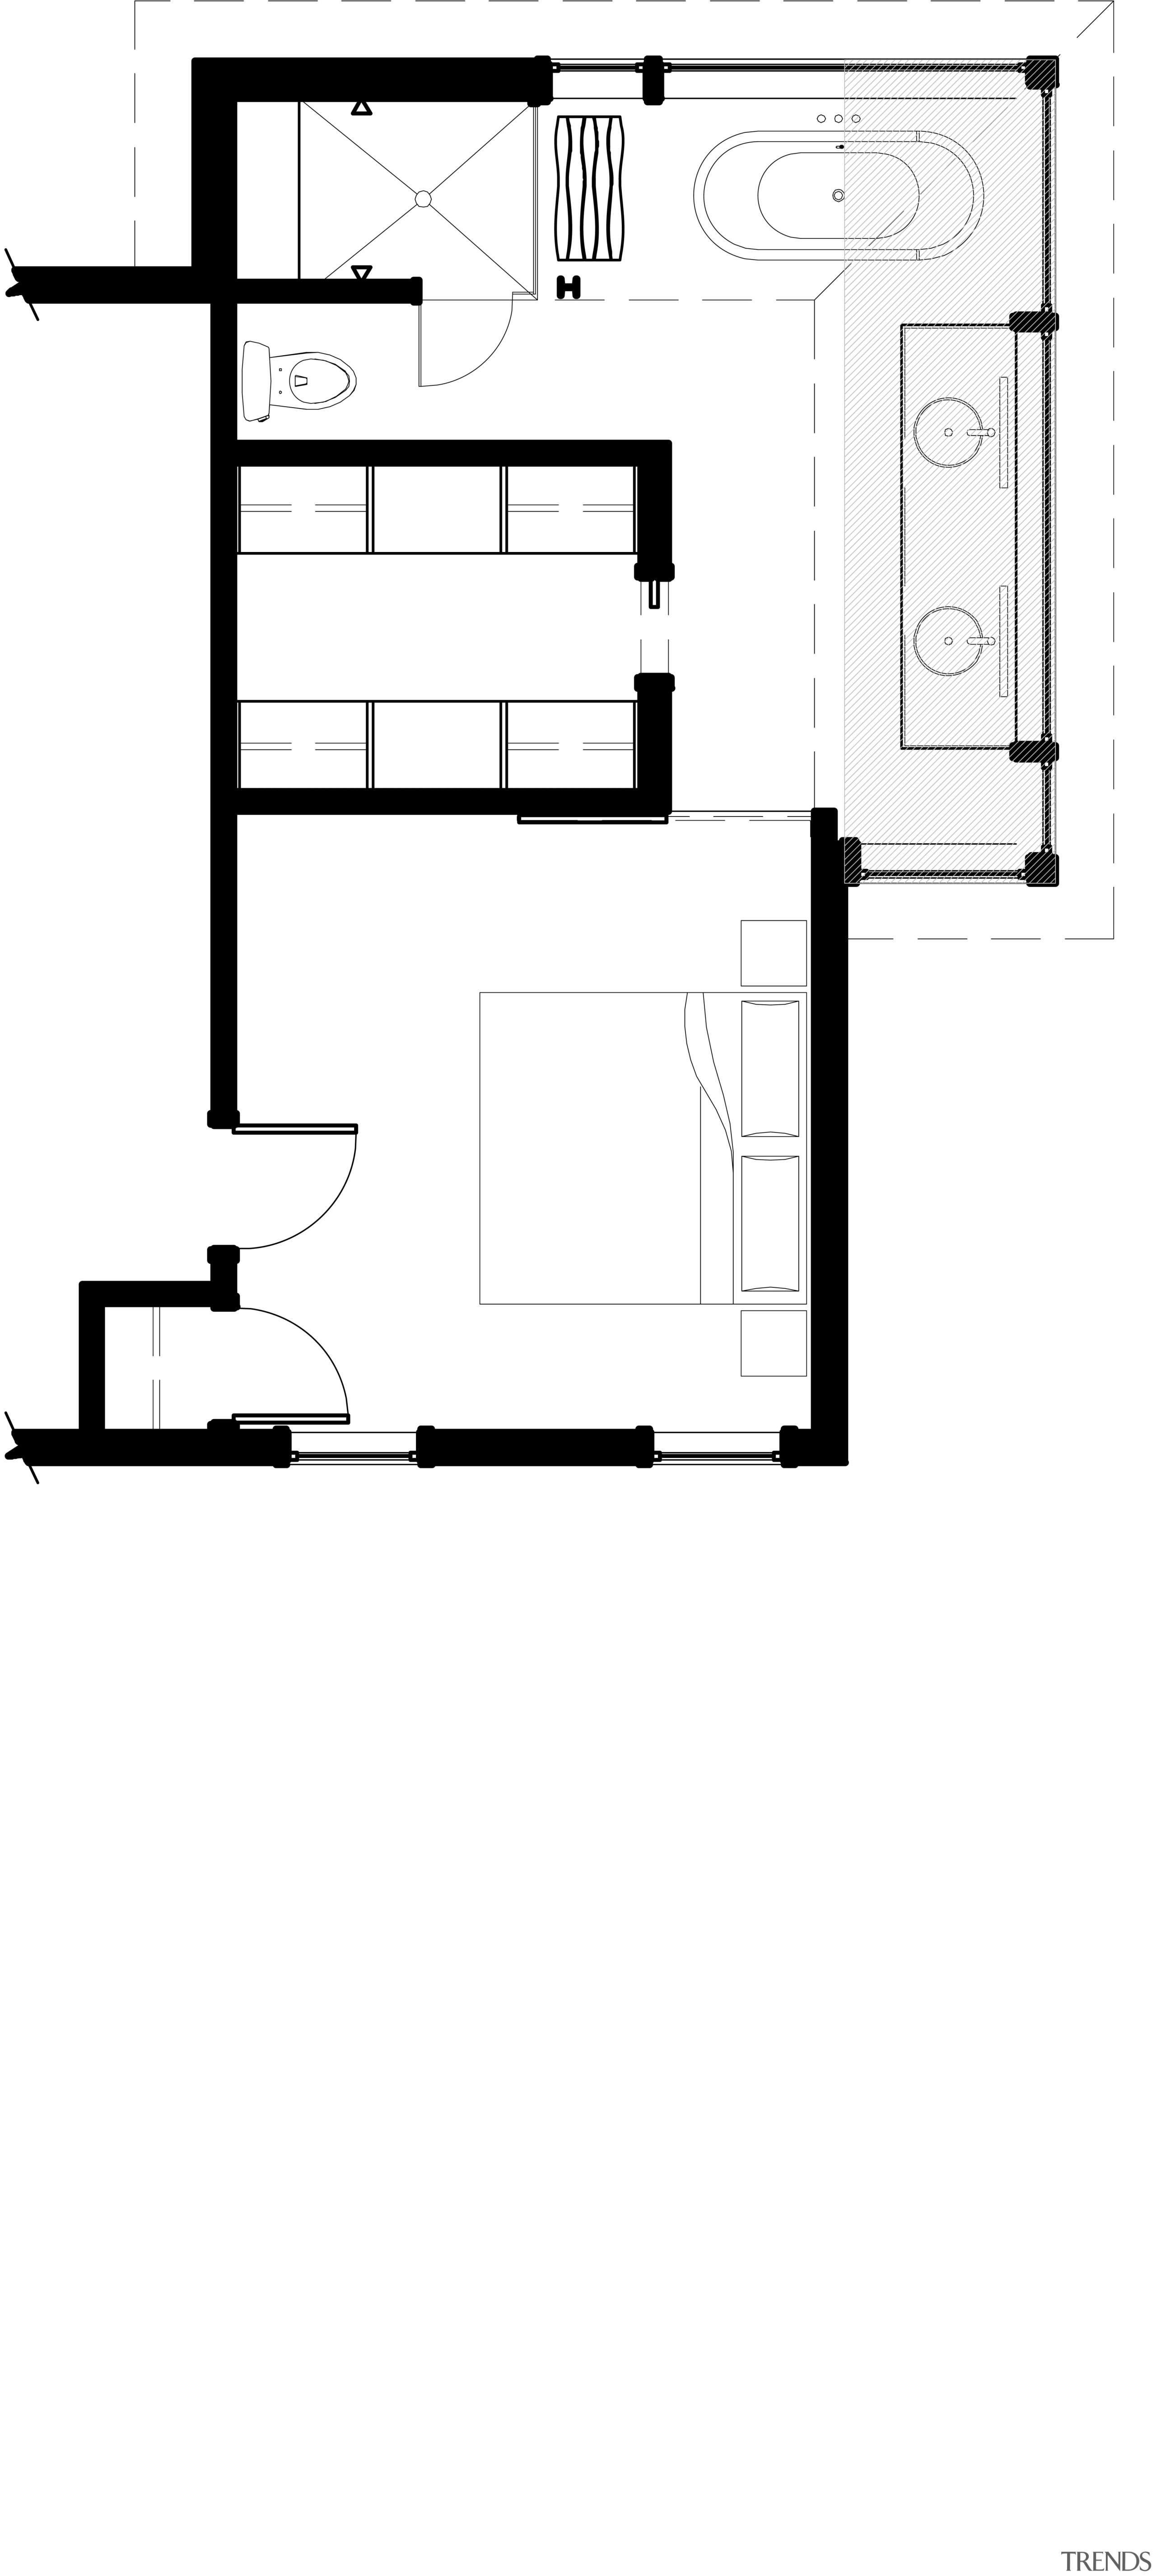 This home and kitchen was designed by Finne angle, area, black and white, design, diagram, drawing, floor plan, font, furniture, line, product, product design, square, text, white